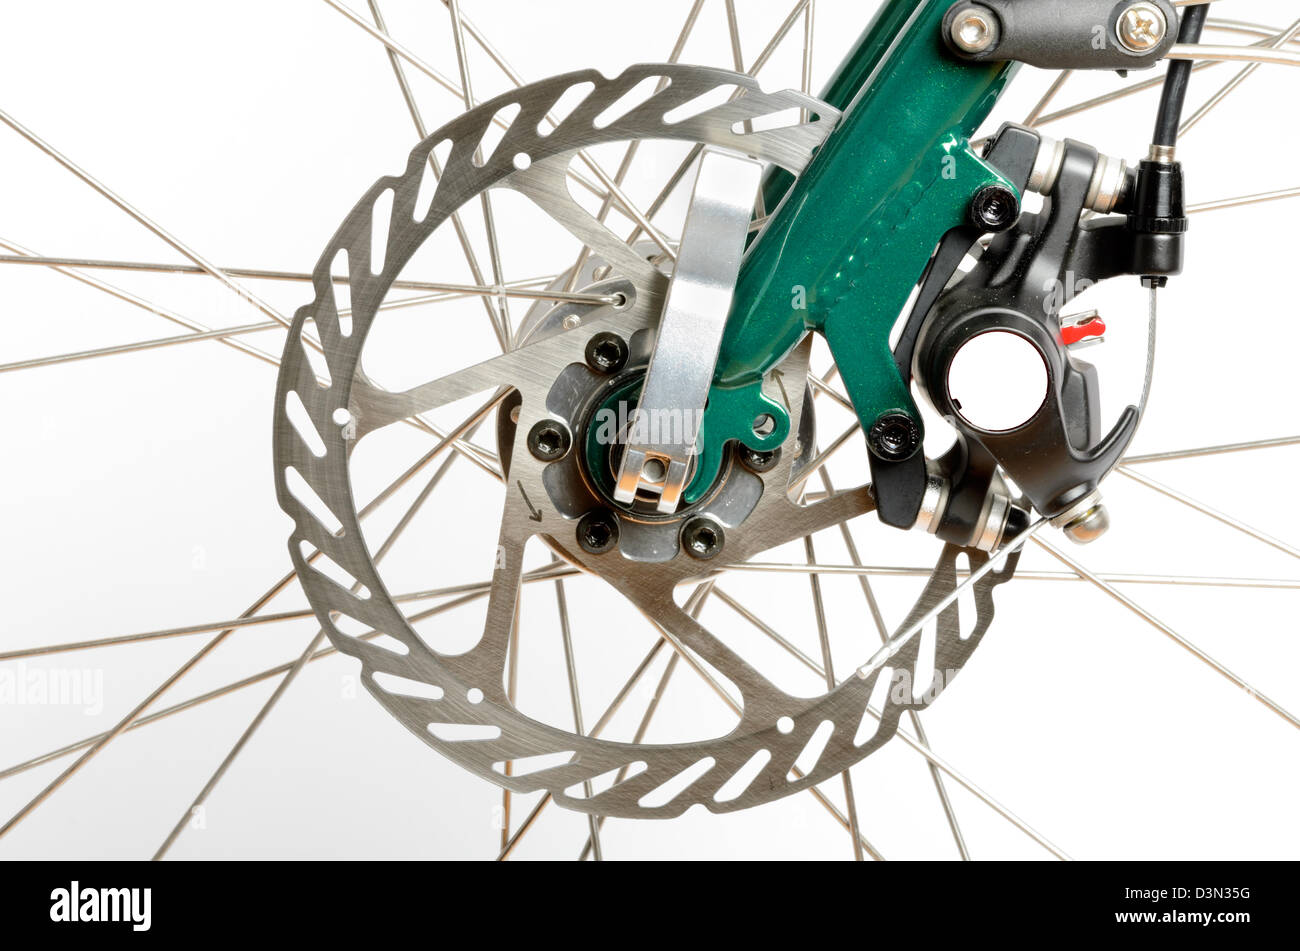 Bicycle disc brake and caliper isolated on a white background - Stock Image